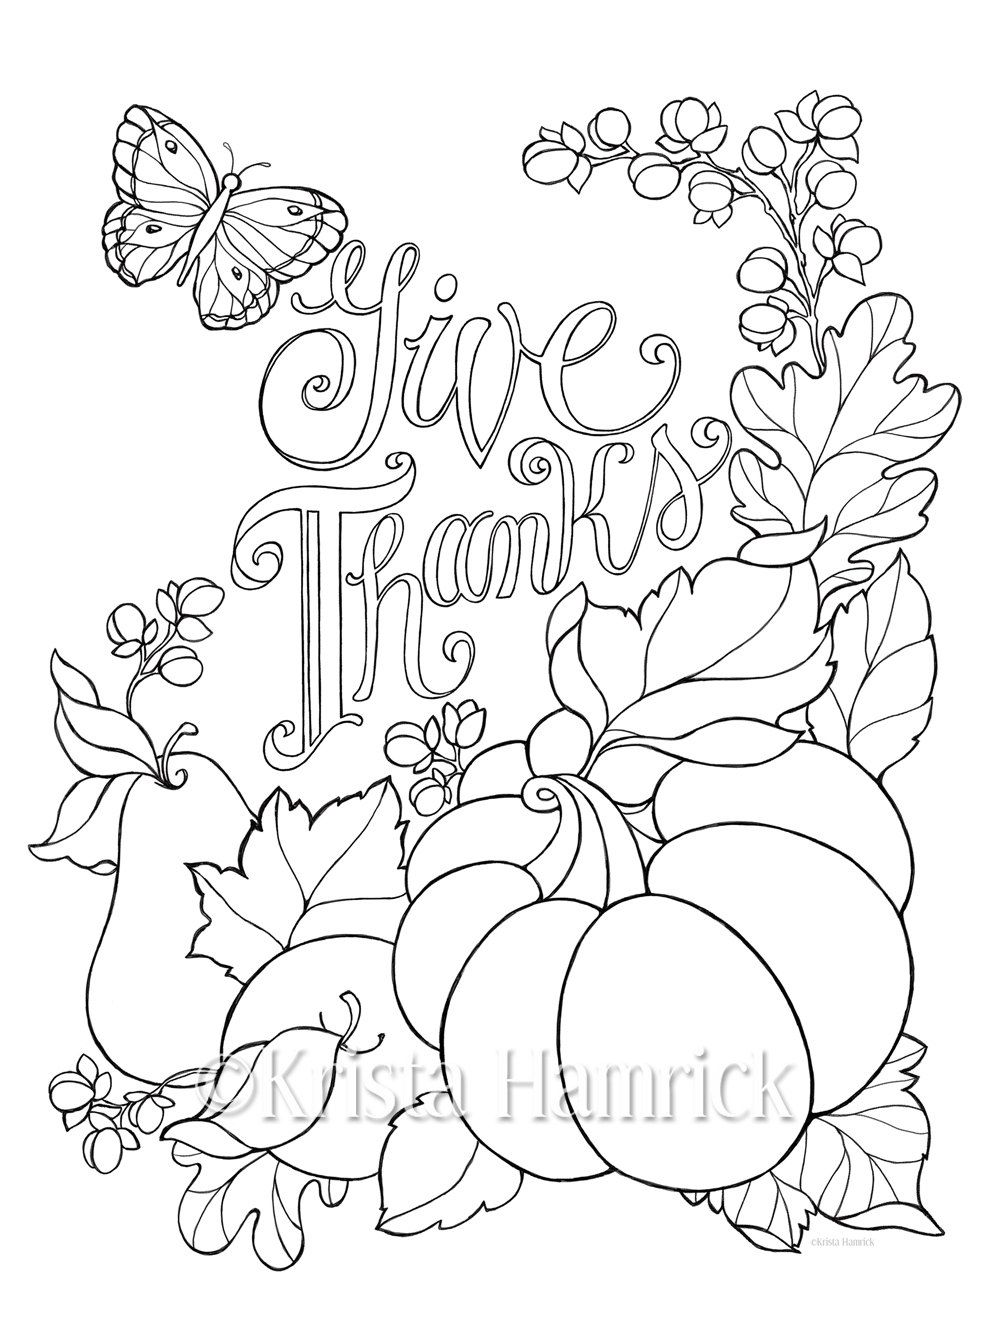 Give Thanks coloring page / Two sizes included: 8.5X11